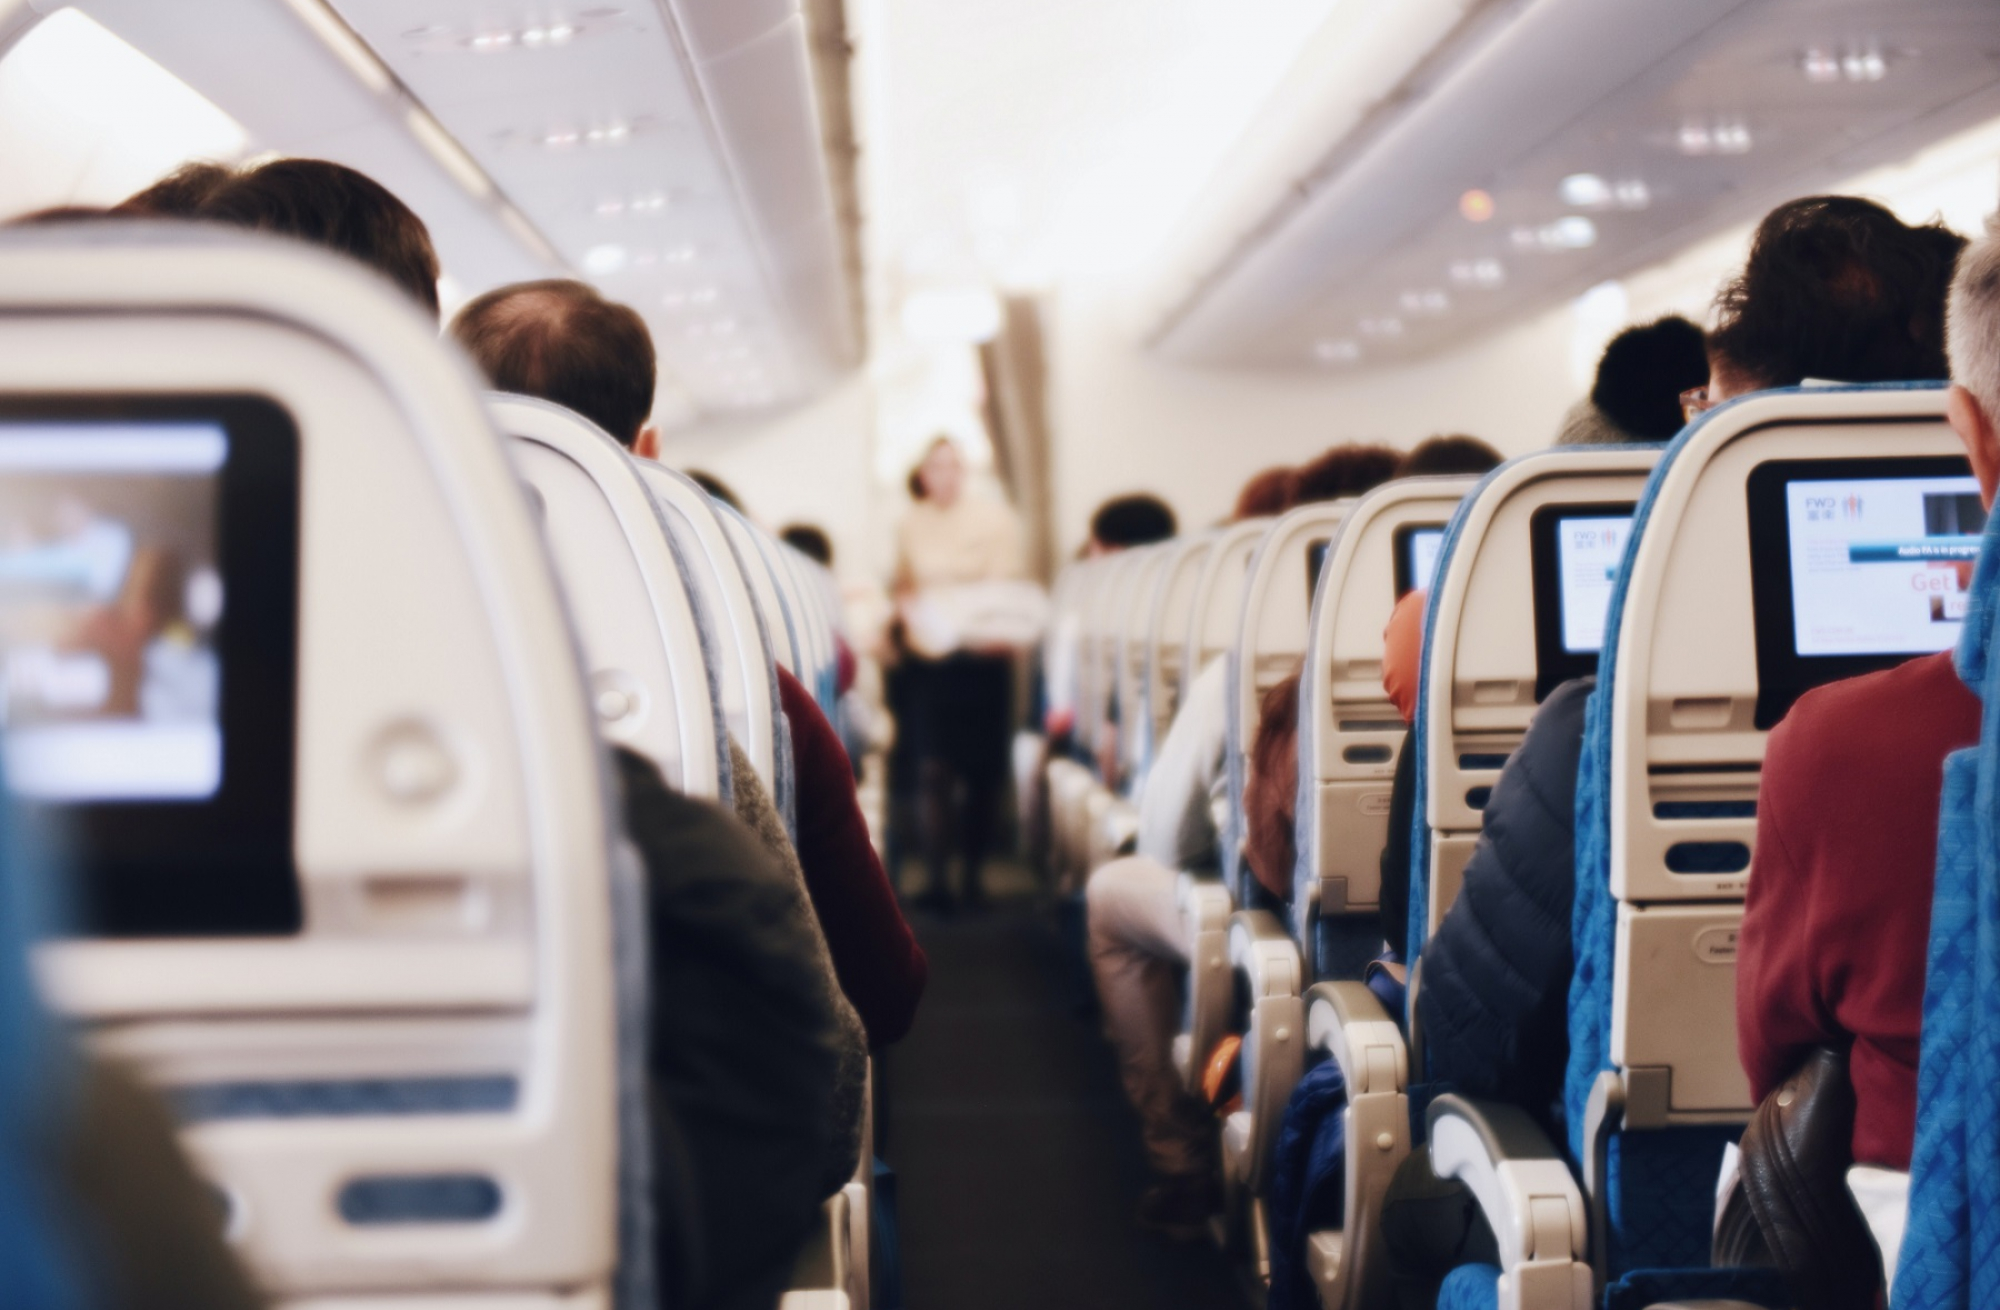 photo shows airplane aisle from the back with rows of seats